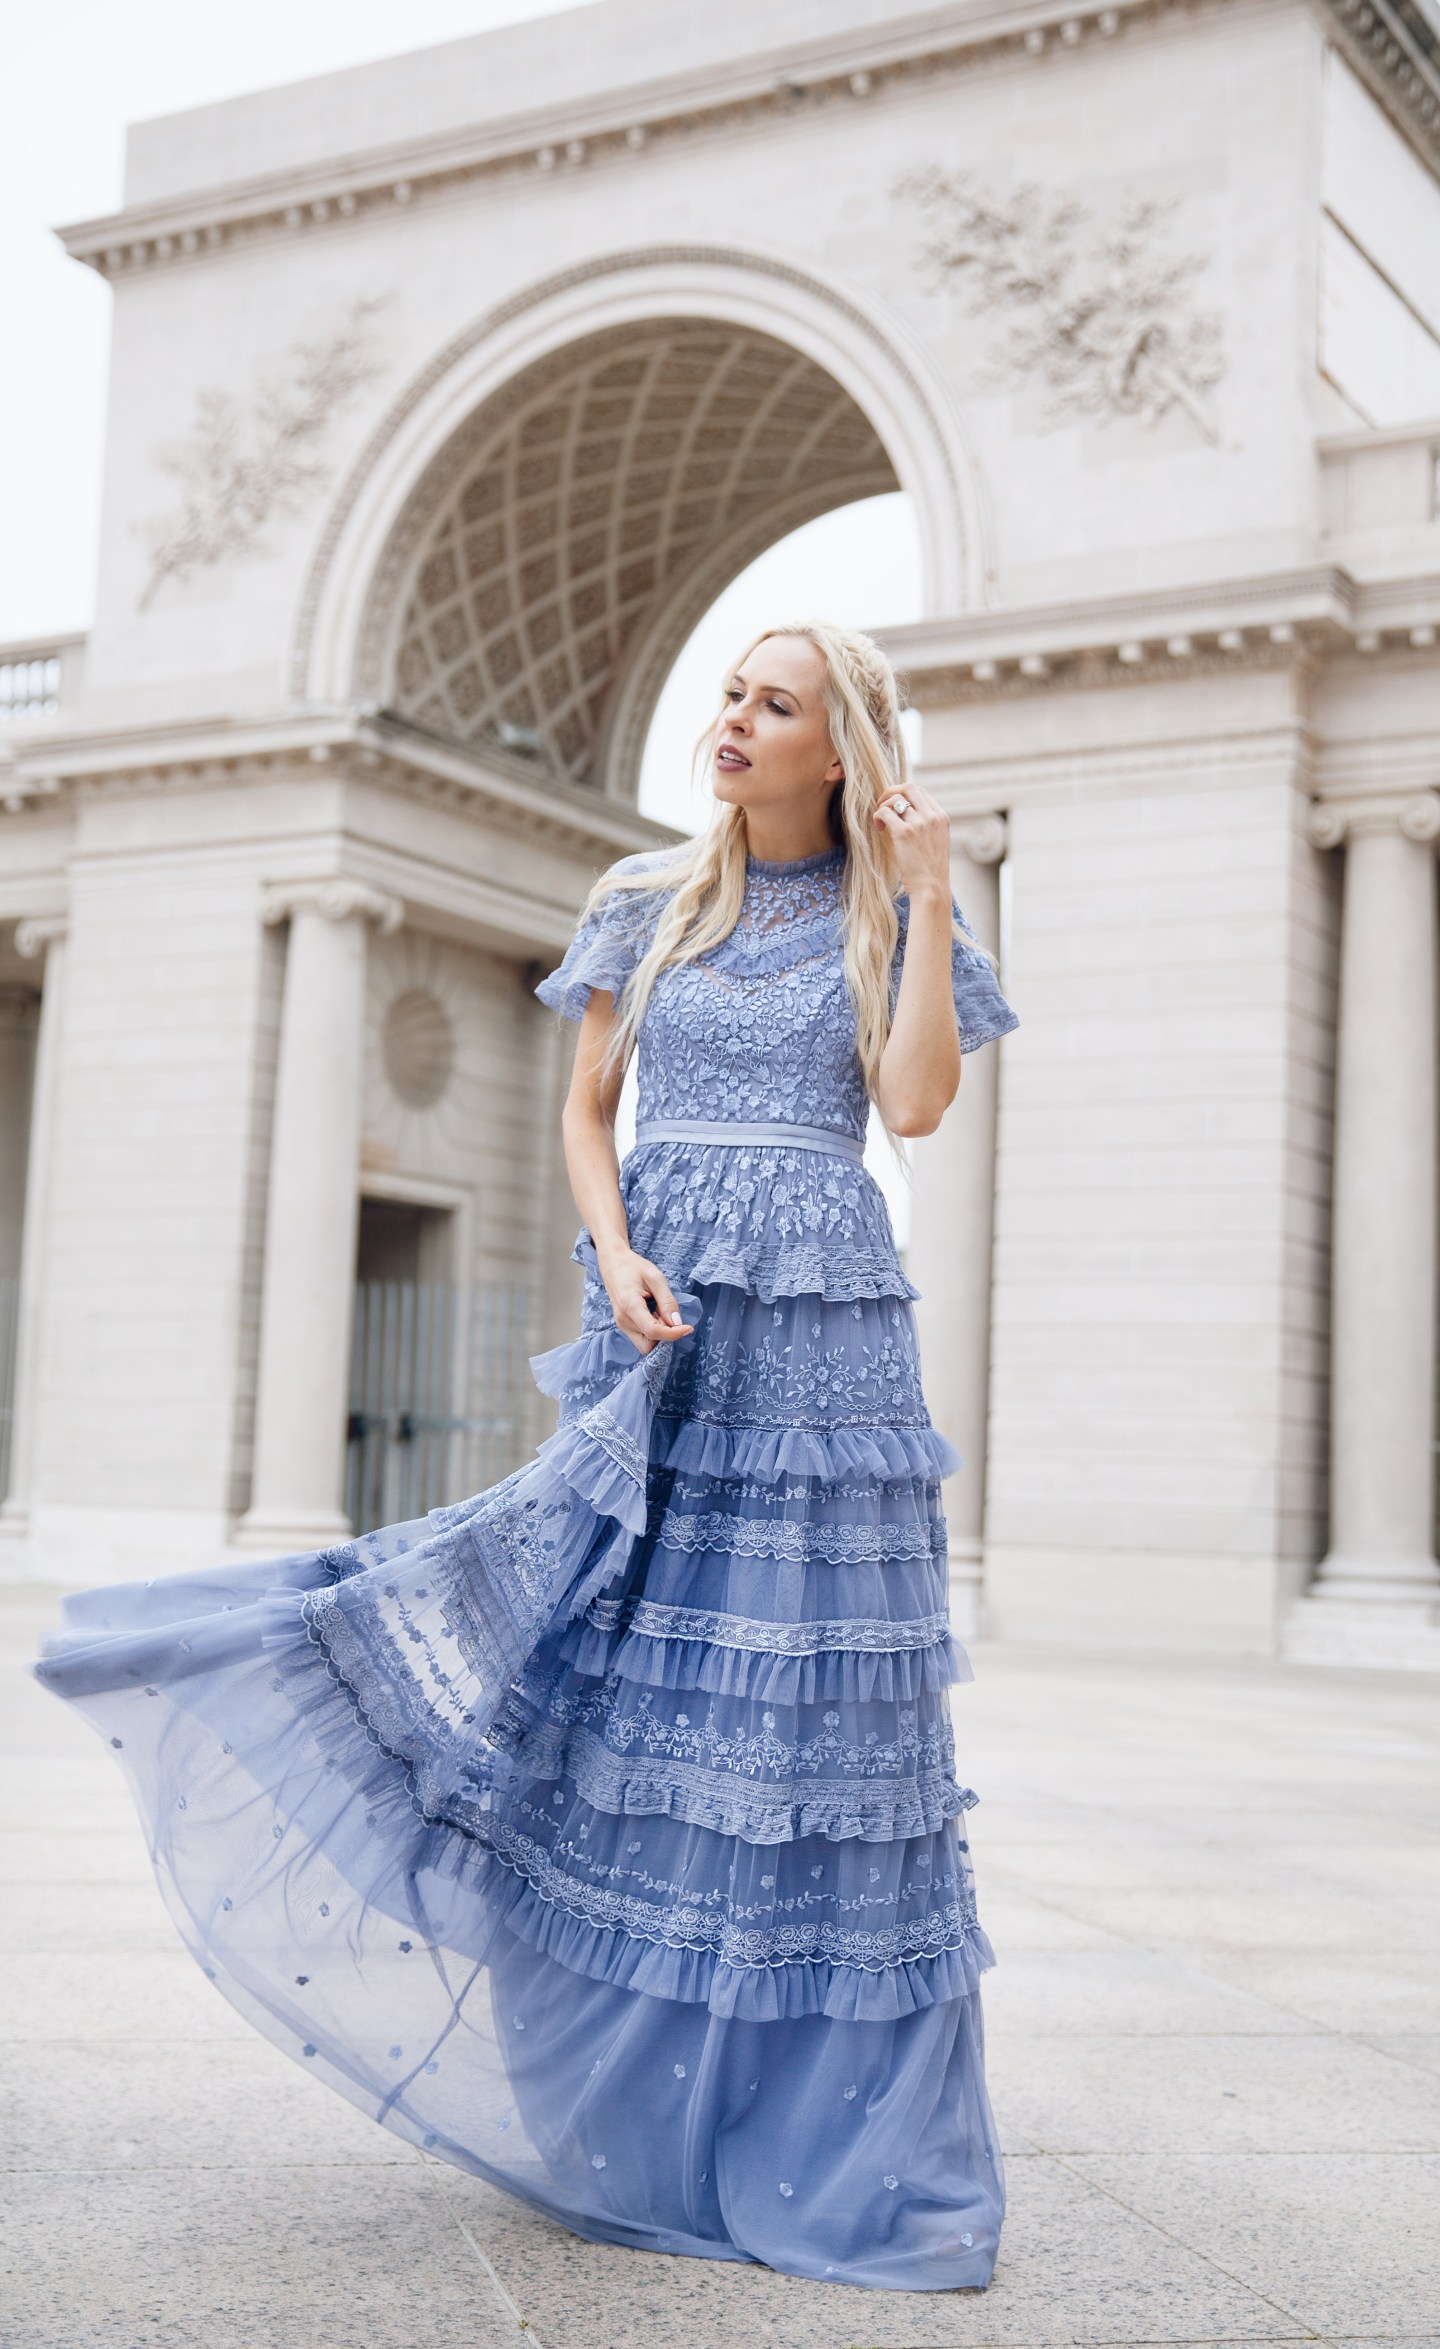 Top San Francisco fashion blog, Lombard and Fifth, features her tips on How to Ebay effectively: image of a blonde woman wearing a stunning maxi dress found on Ebay